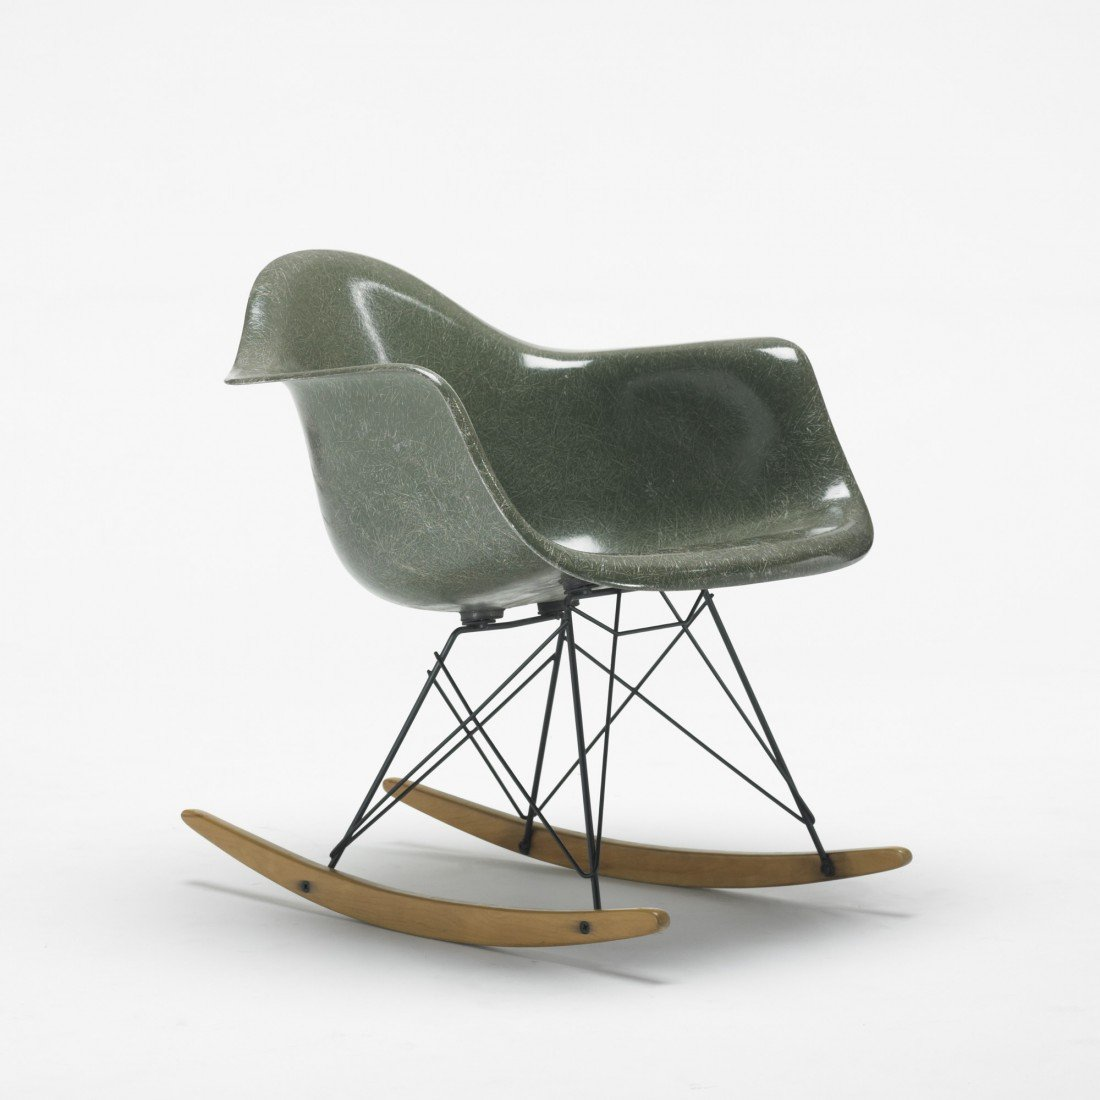 205: Charles and Ray Eames RAR